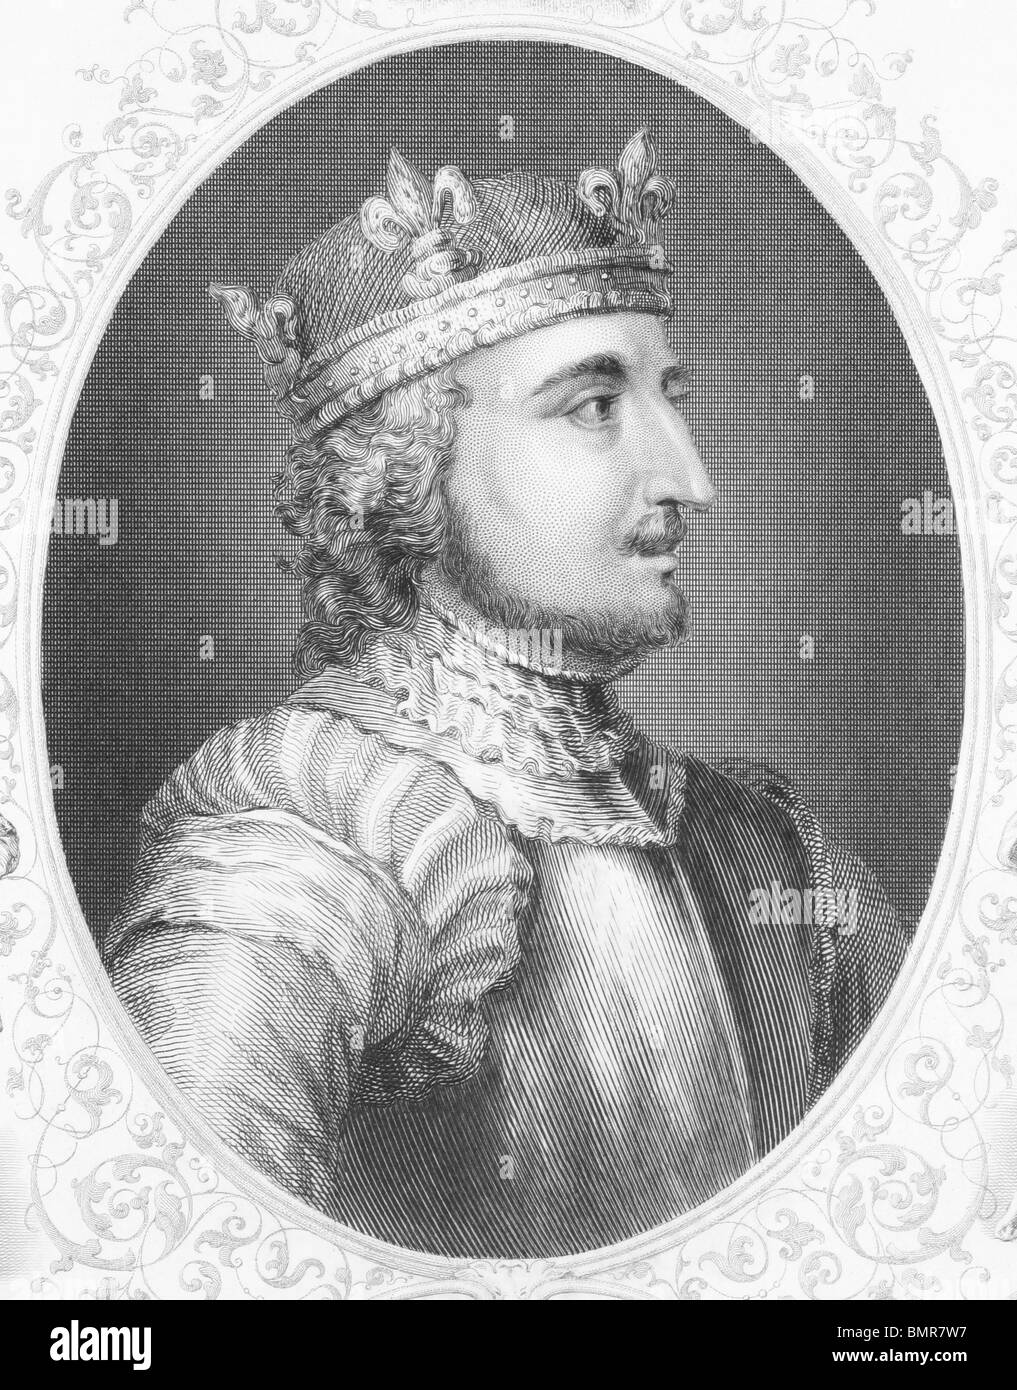 King Stephen (1096-1154) on engraving from the 1800s. Grandson of William the Conqueror and last Norman King of - Stock Image